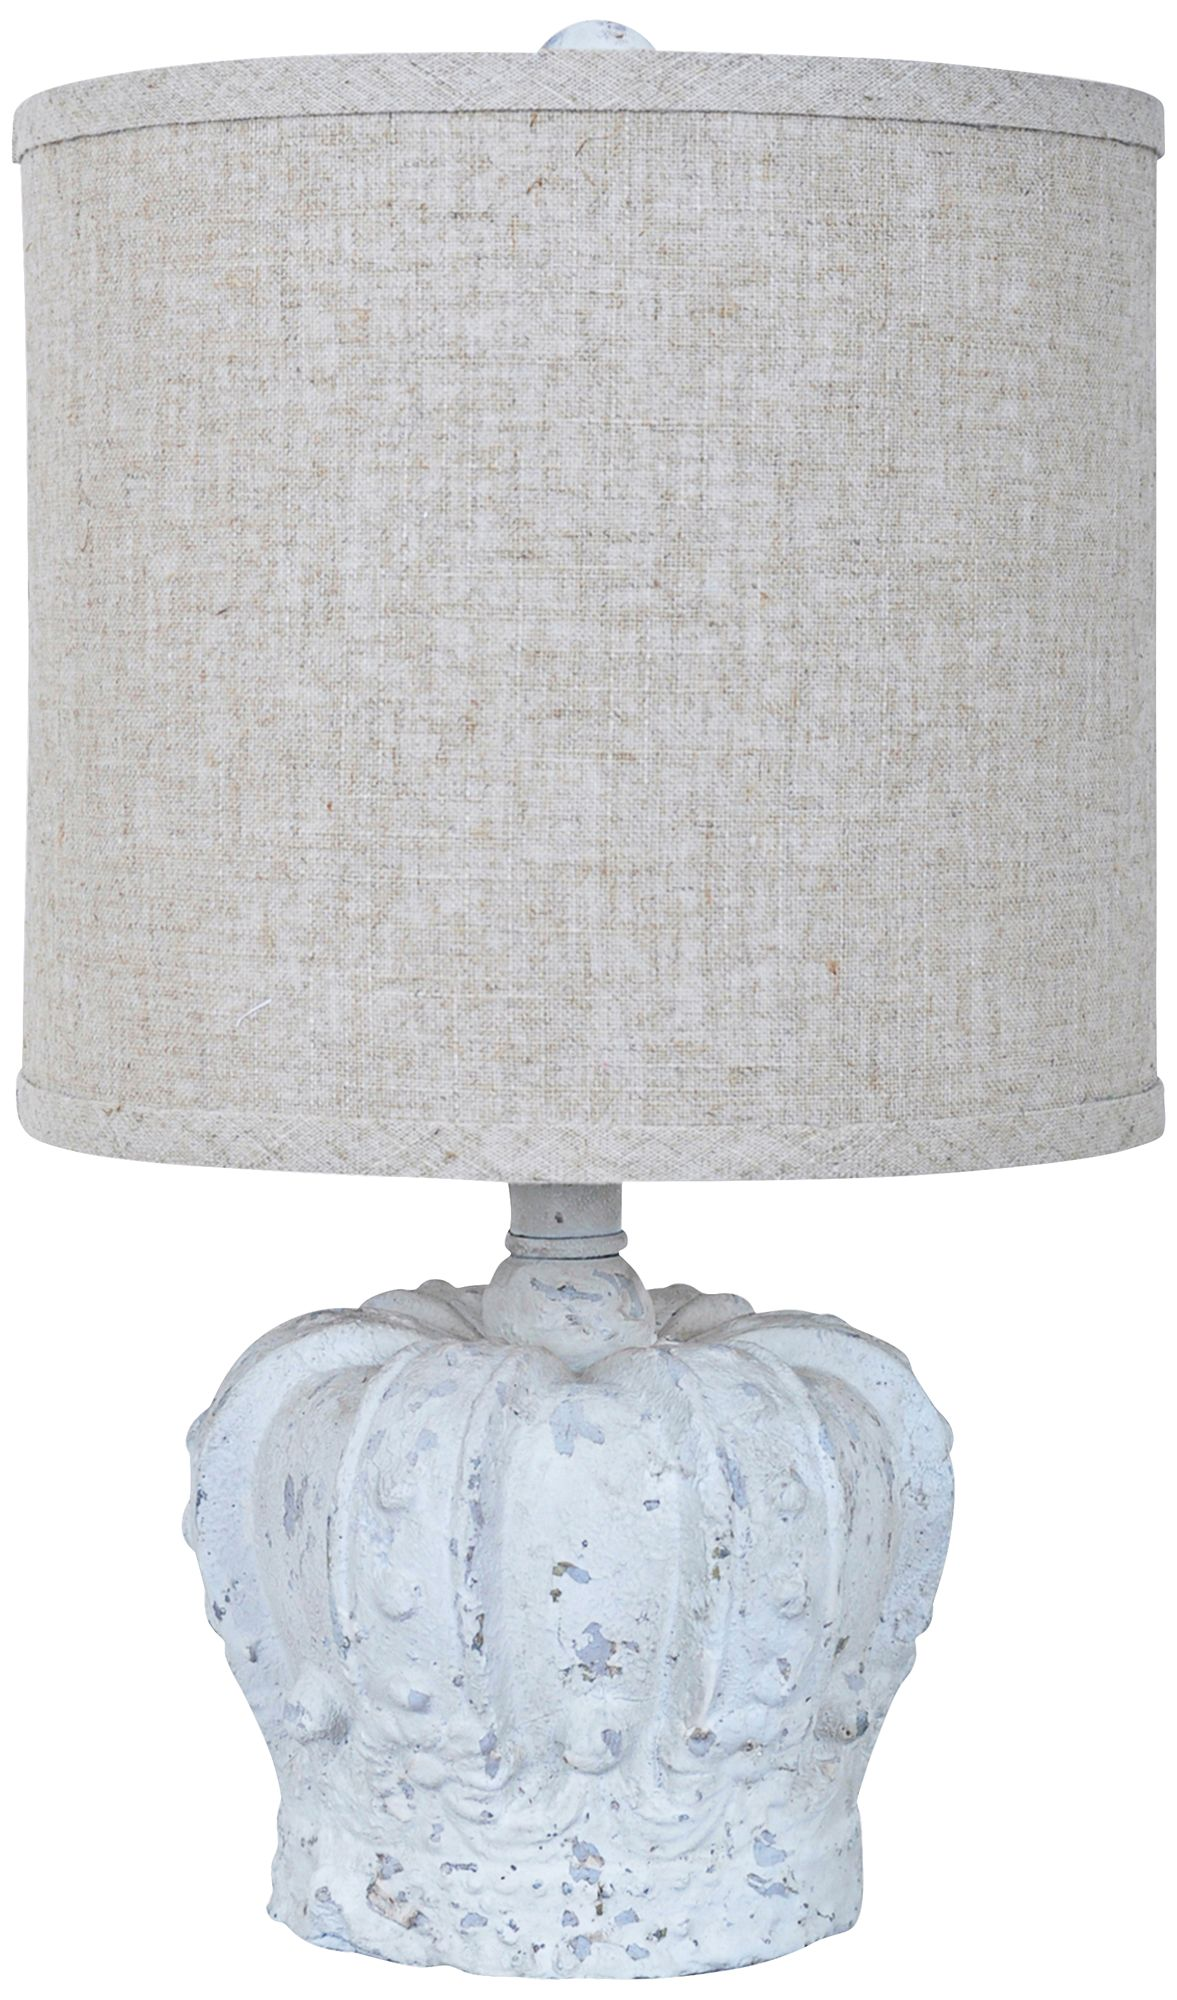 Delightful Crestview Collection Gypsy Crown White Wash Table Lamp